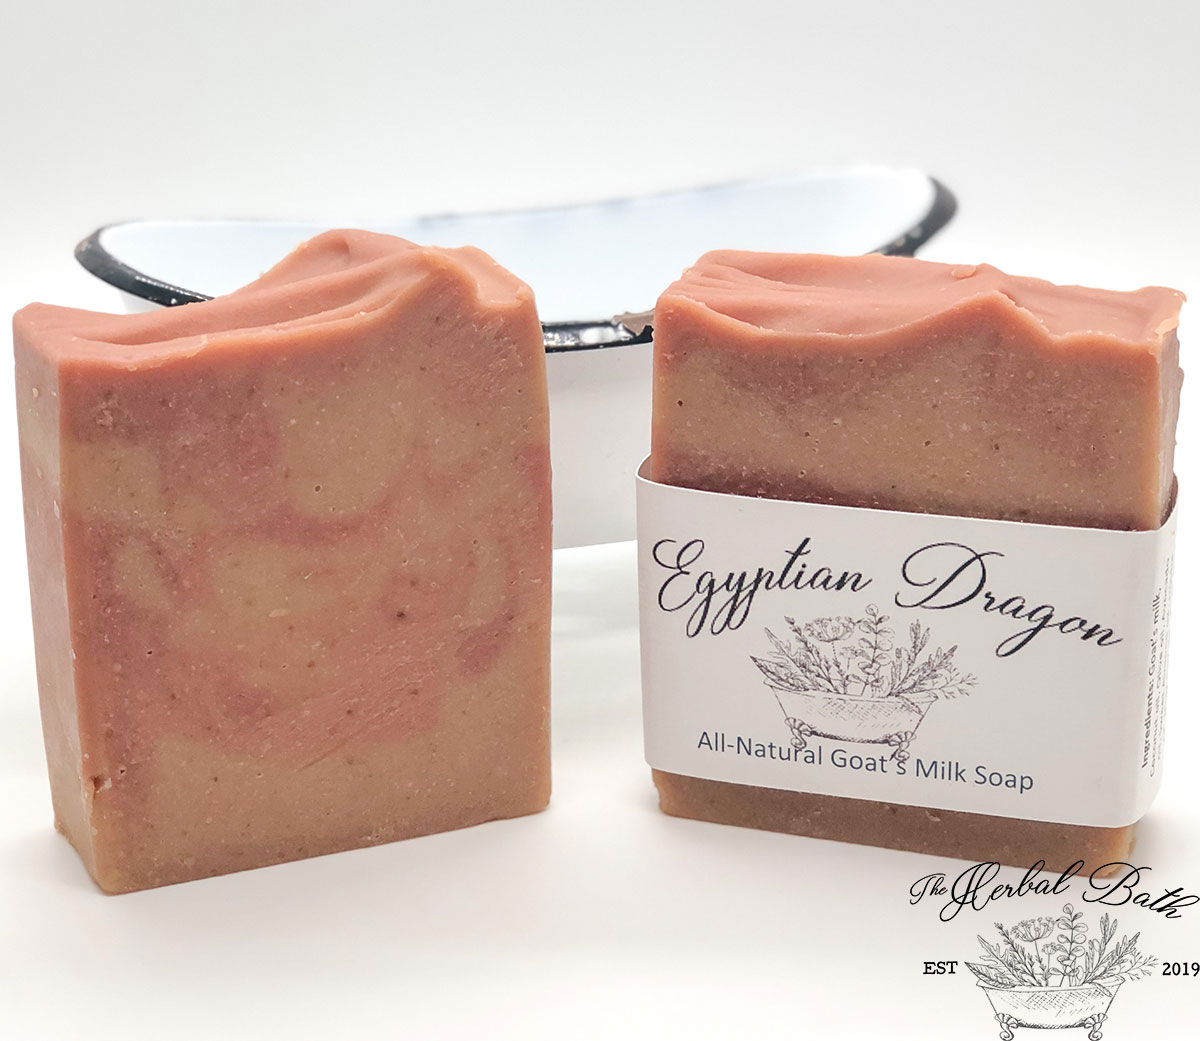 Egyptian Dragon Soap with color